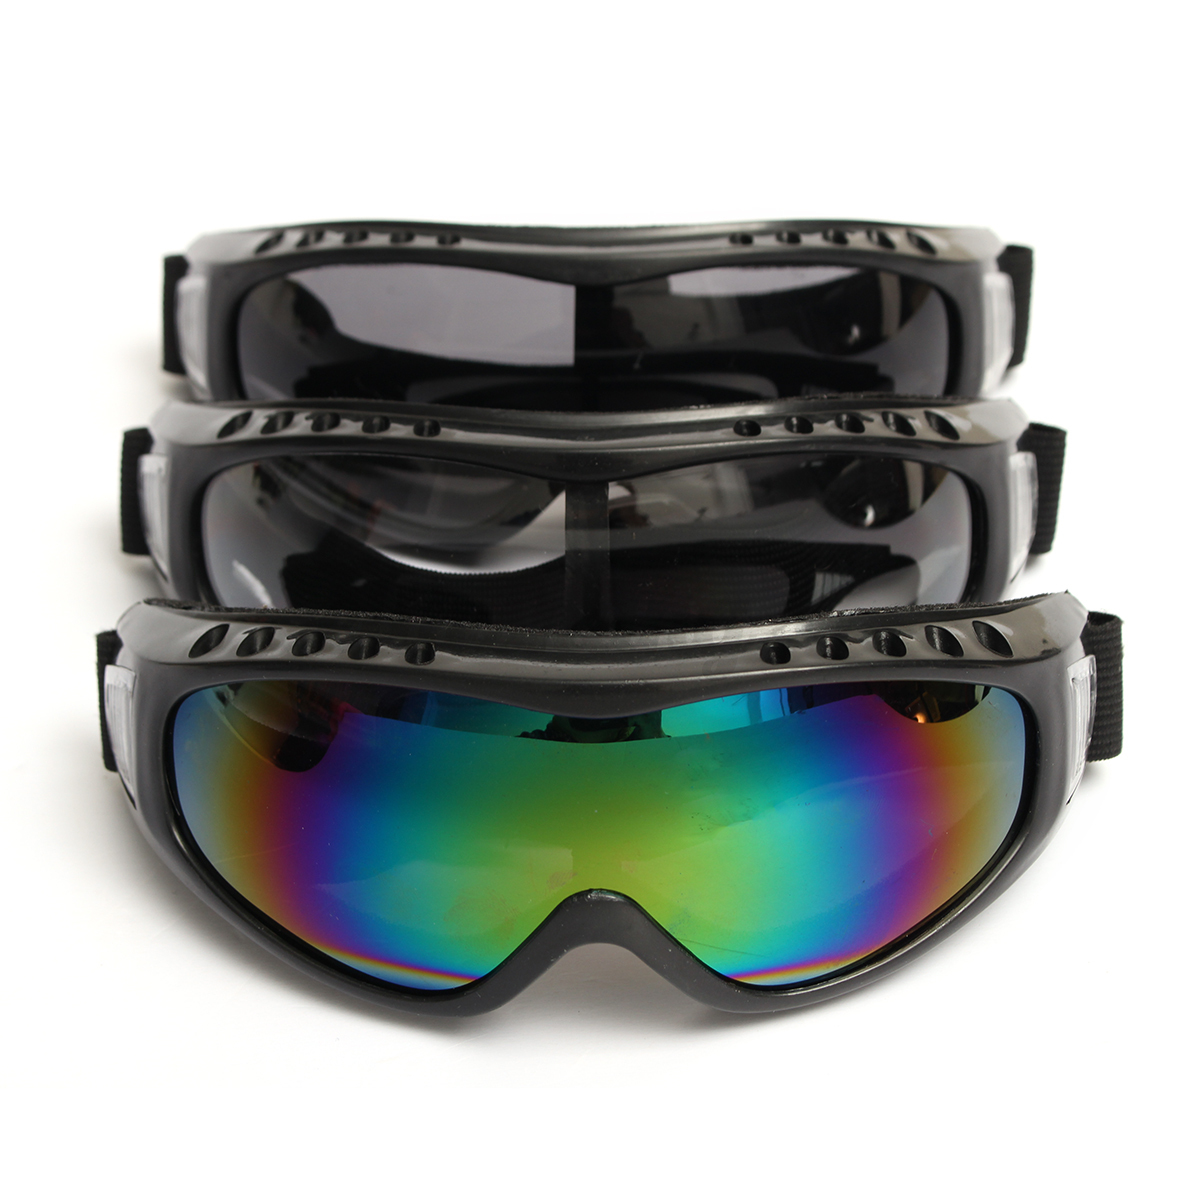 staubdicht snowboard sonnenbrille schneebrille motorrad ski schutz brille uv400 ebay. Black Bedroom Furniture Sets. Home Design Ideas